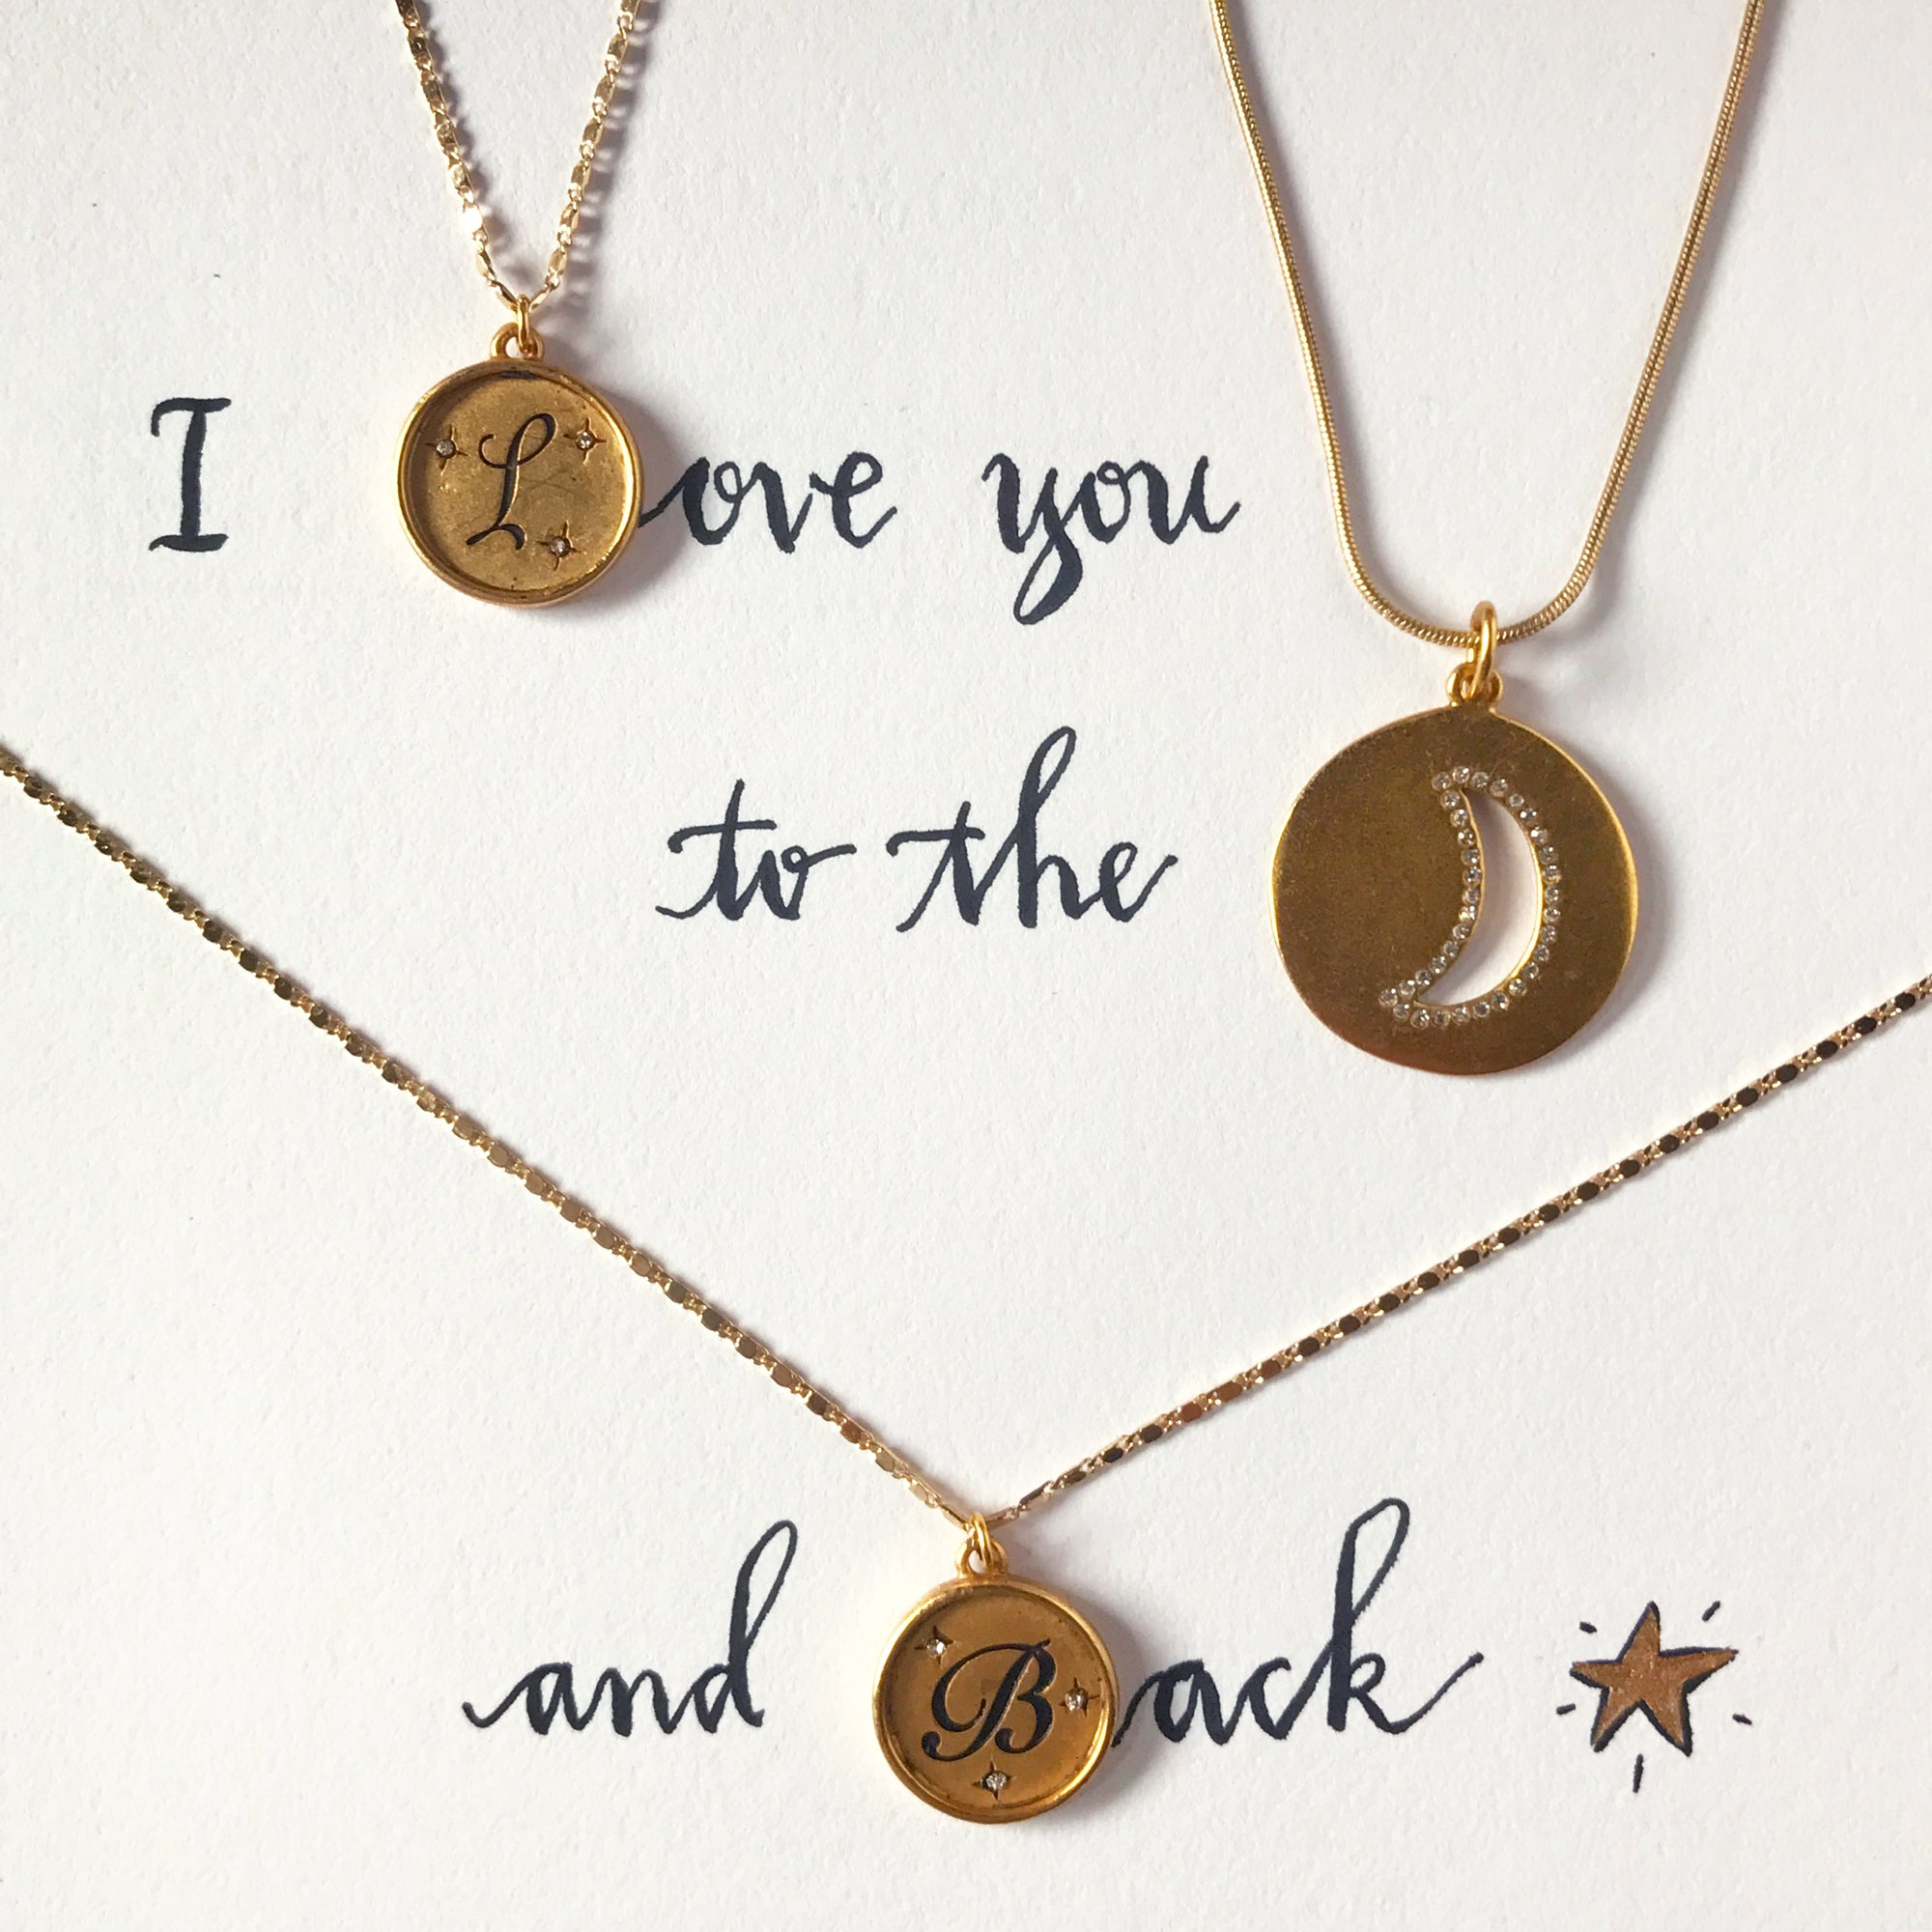 #SequinSayings - I Love You to the Moon...